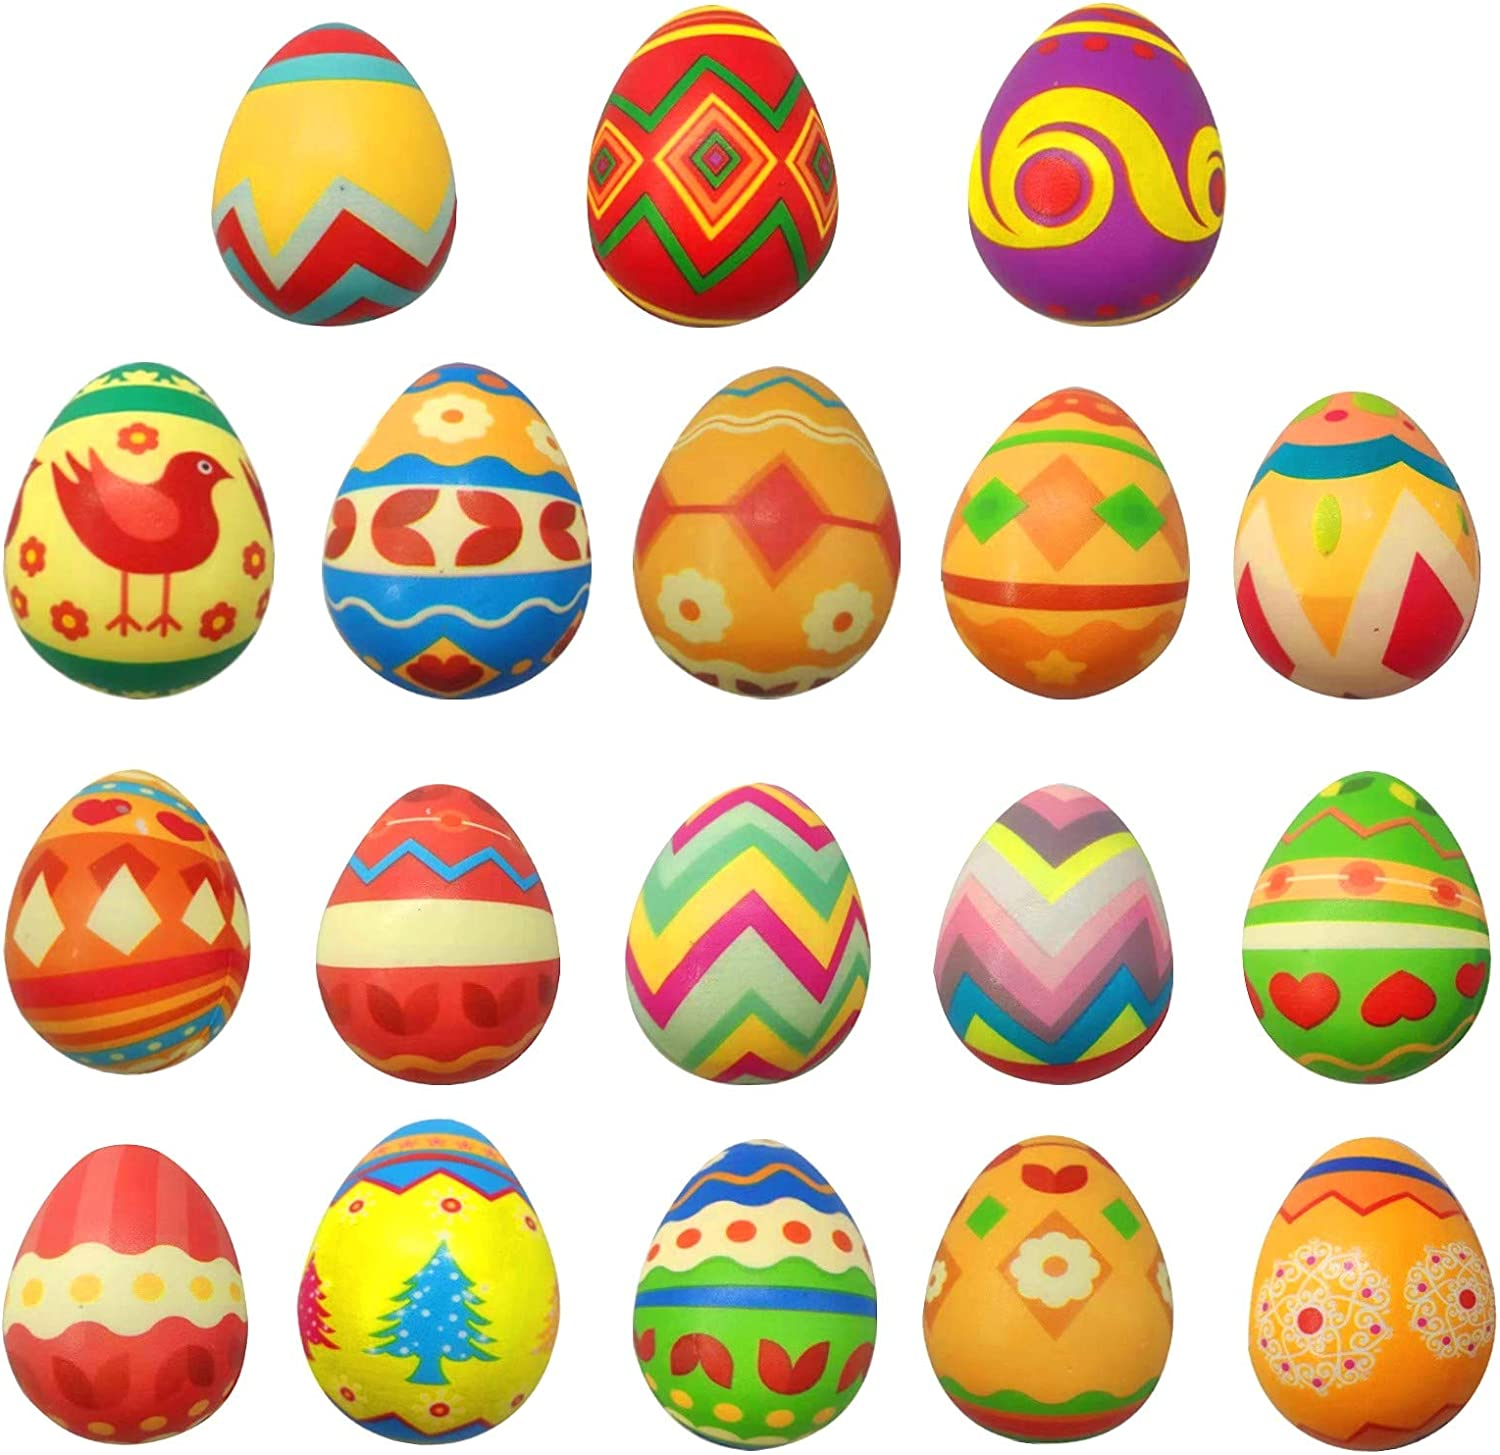 9 Types of Decompression Slow Rebound 55% OFF Mini Squ Eggs Max 58% OFF Easter Toys